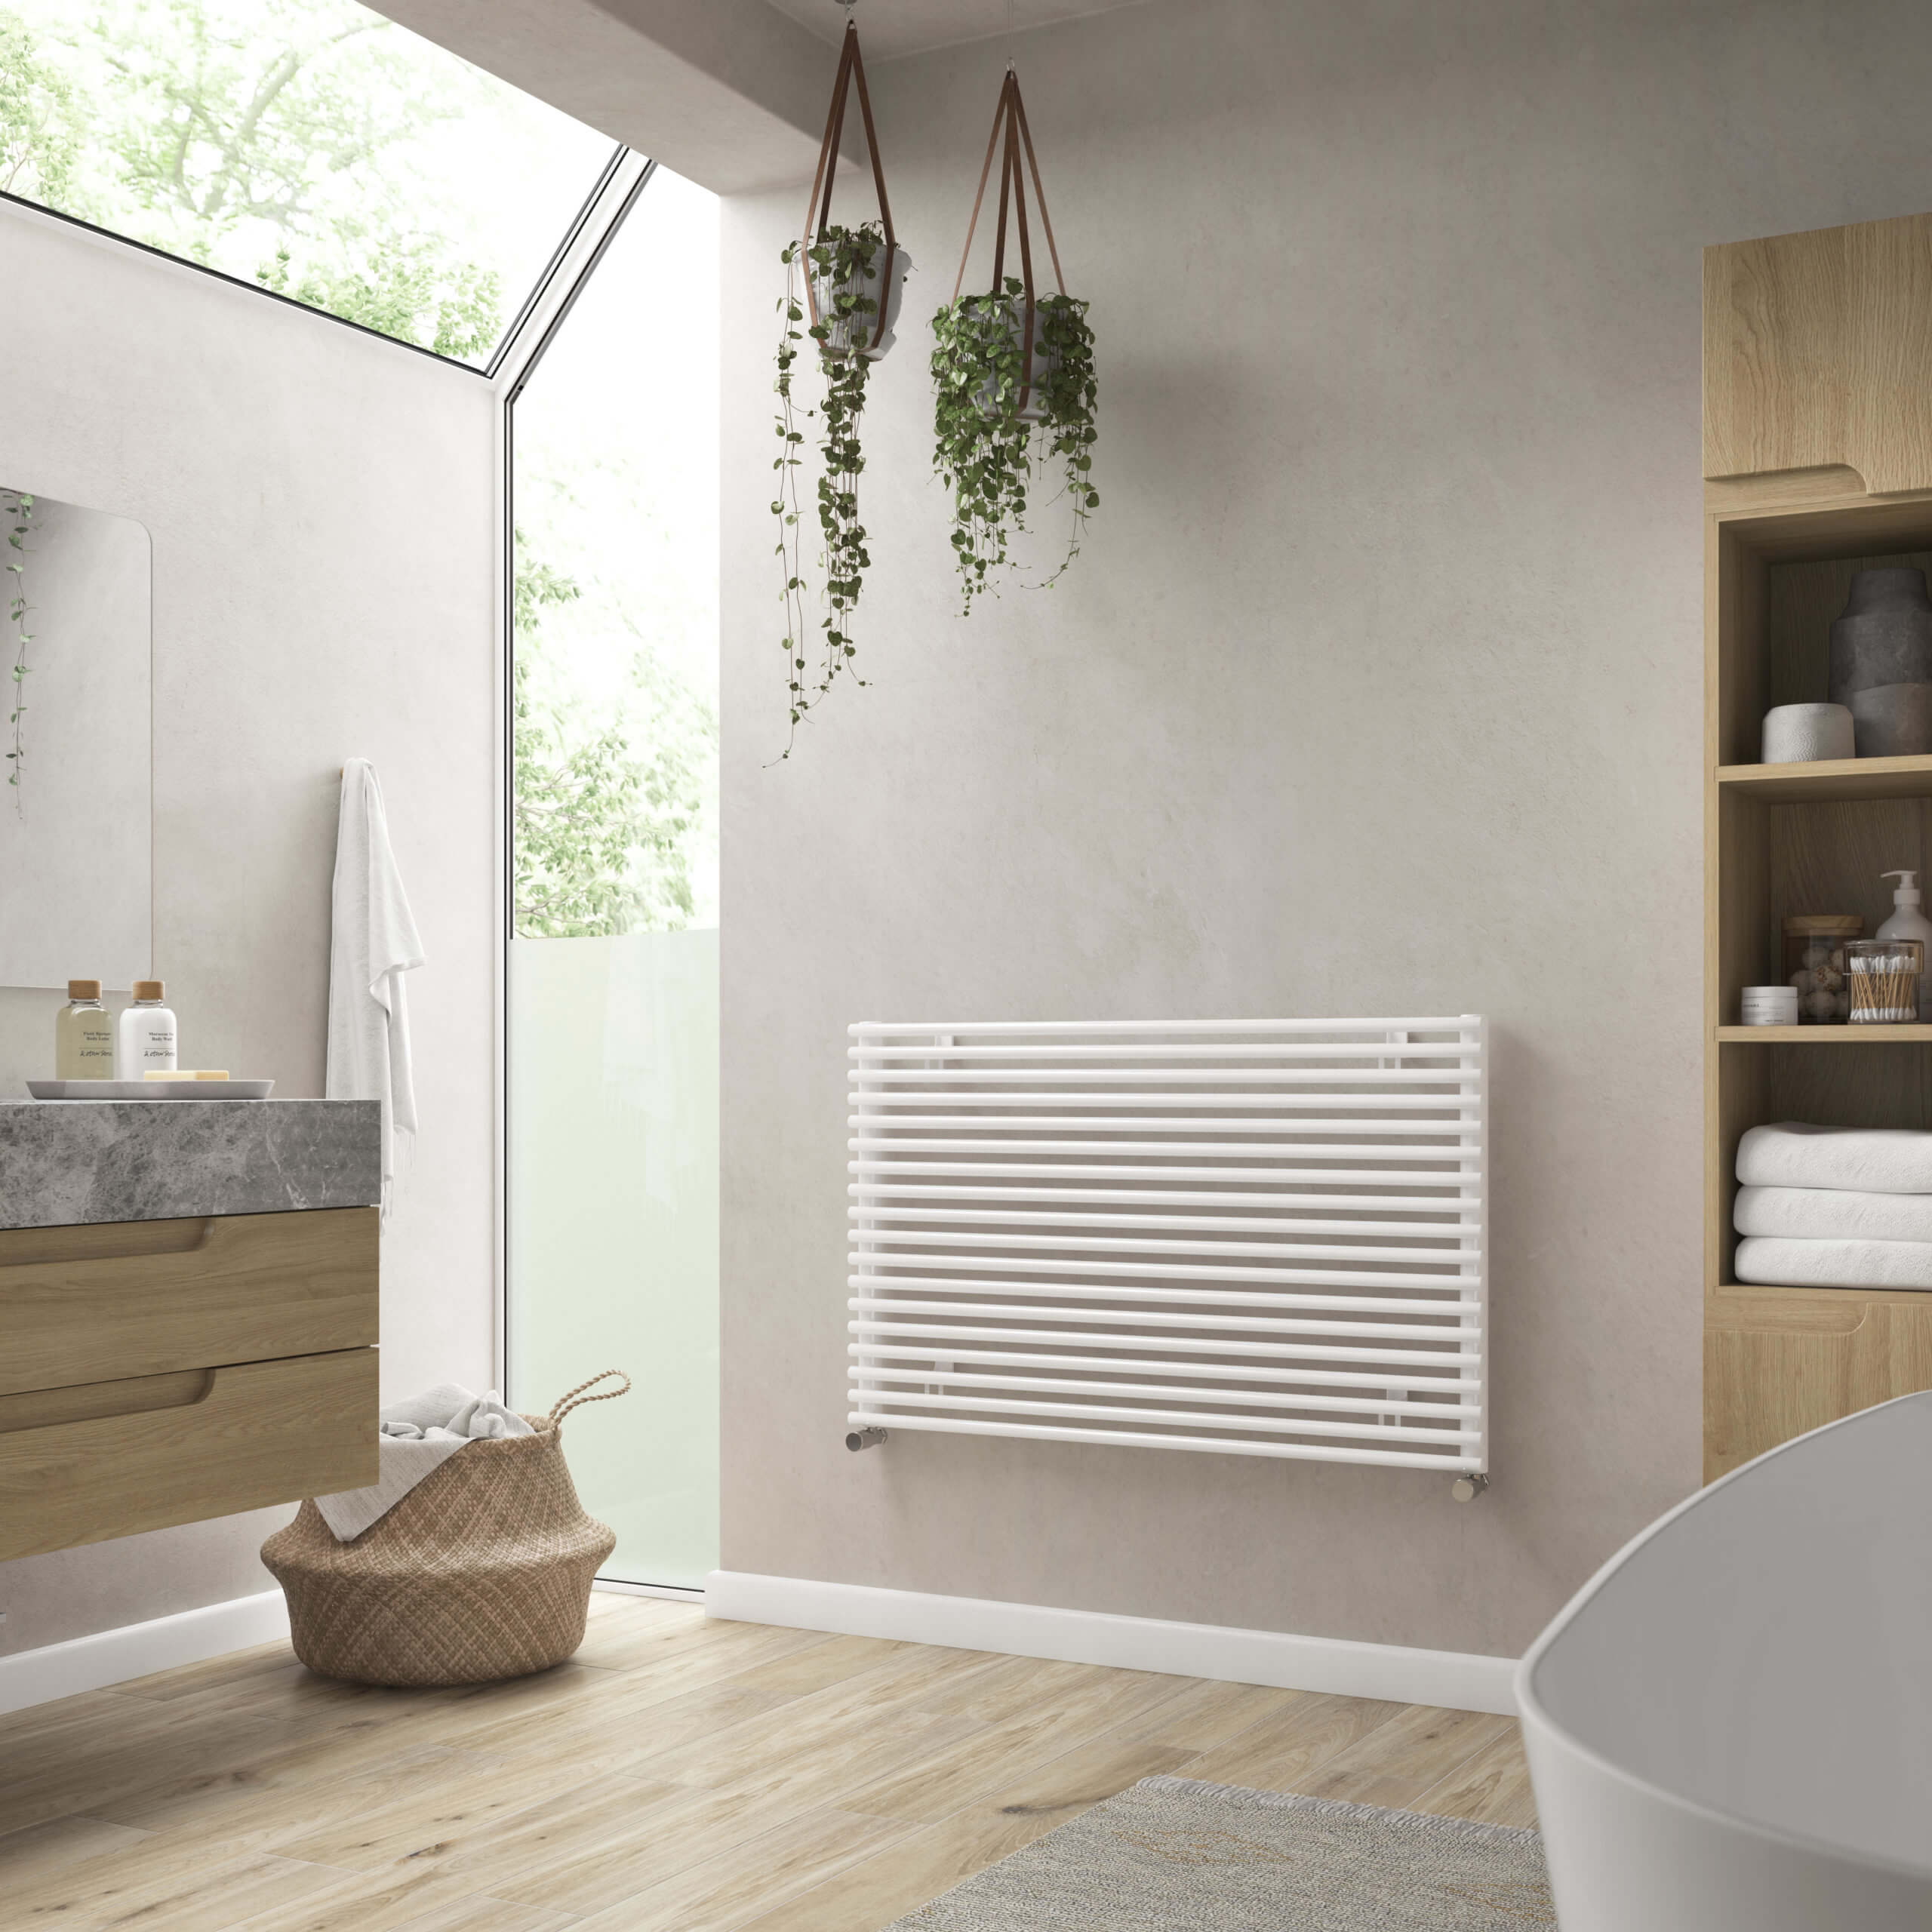 Caliente Horizontal Radiators